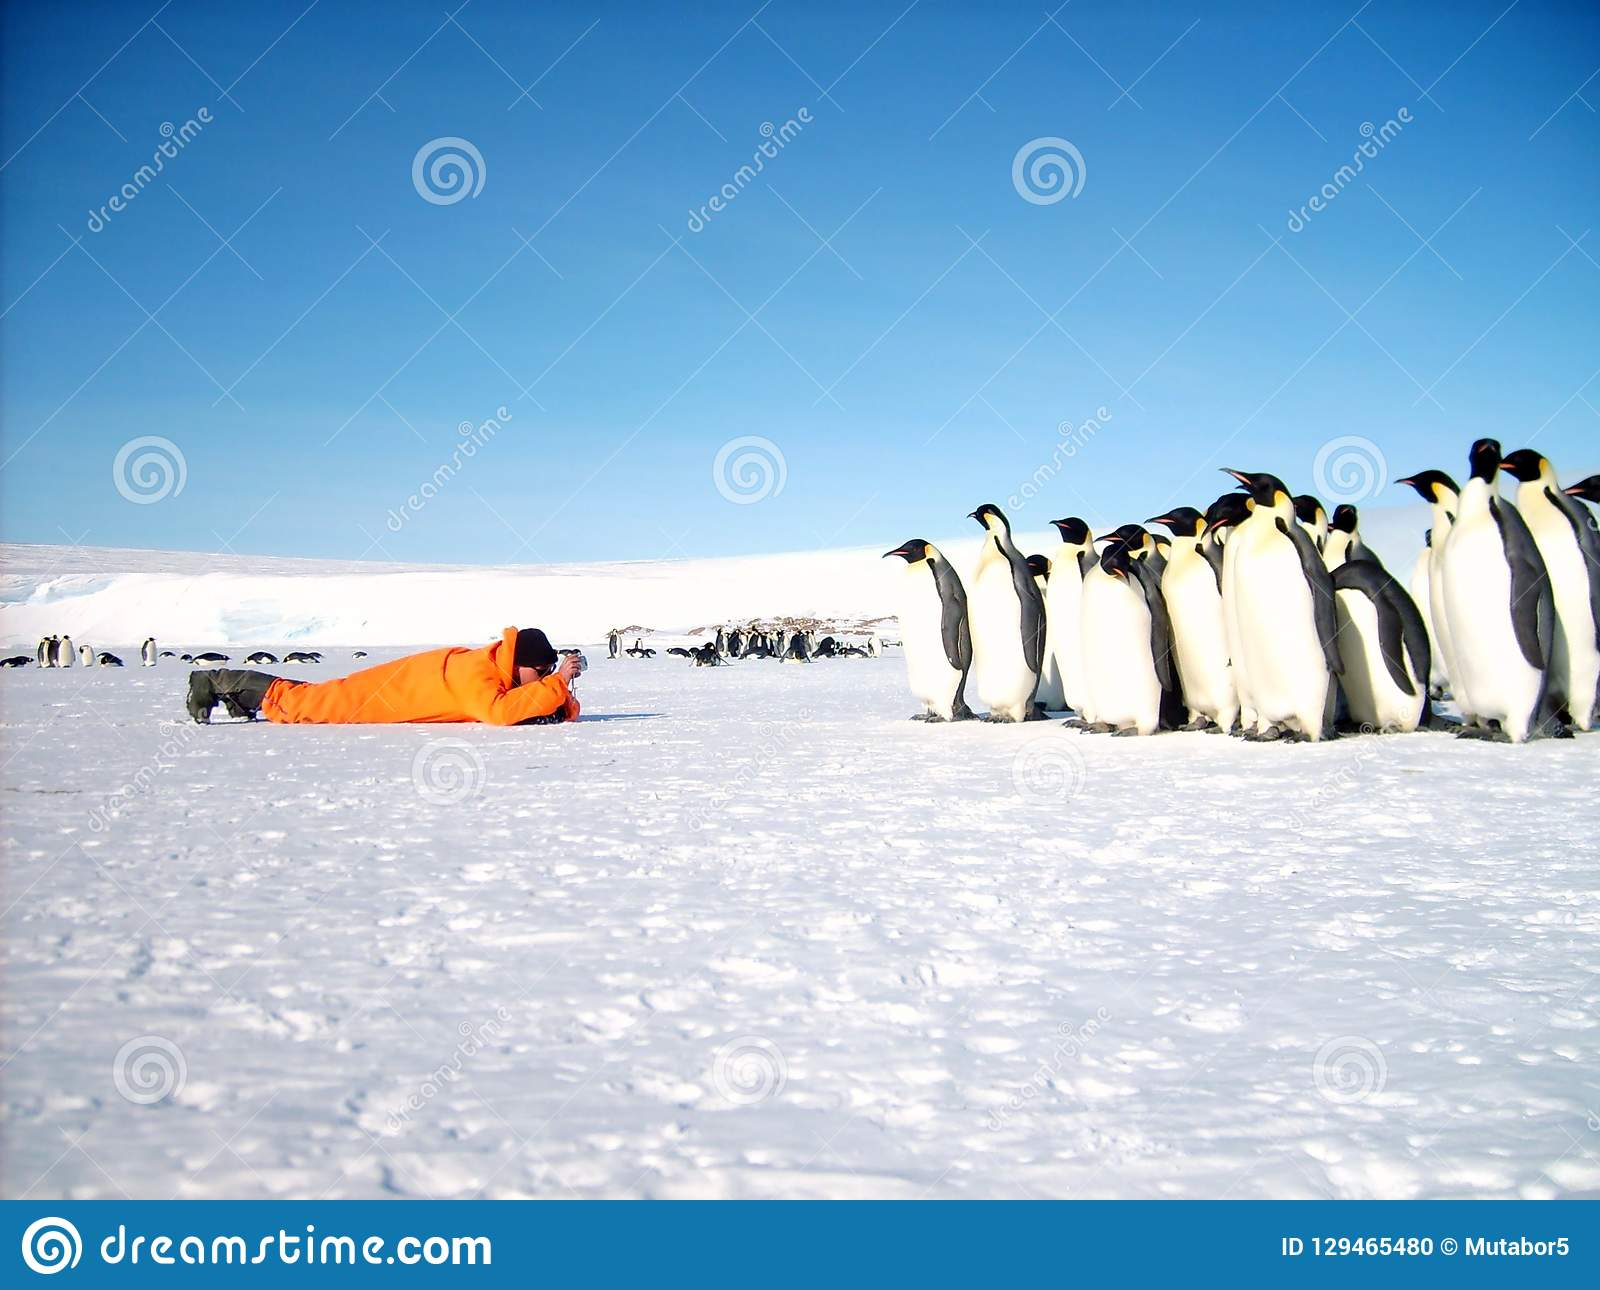 A man in an orange suit explores a colony of emperor penguins.